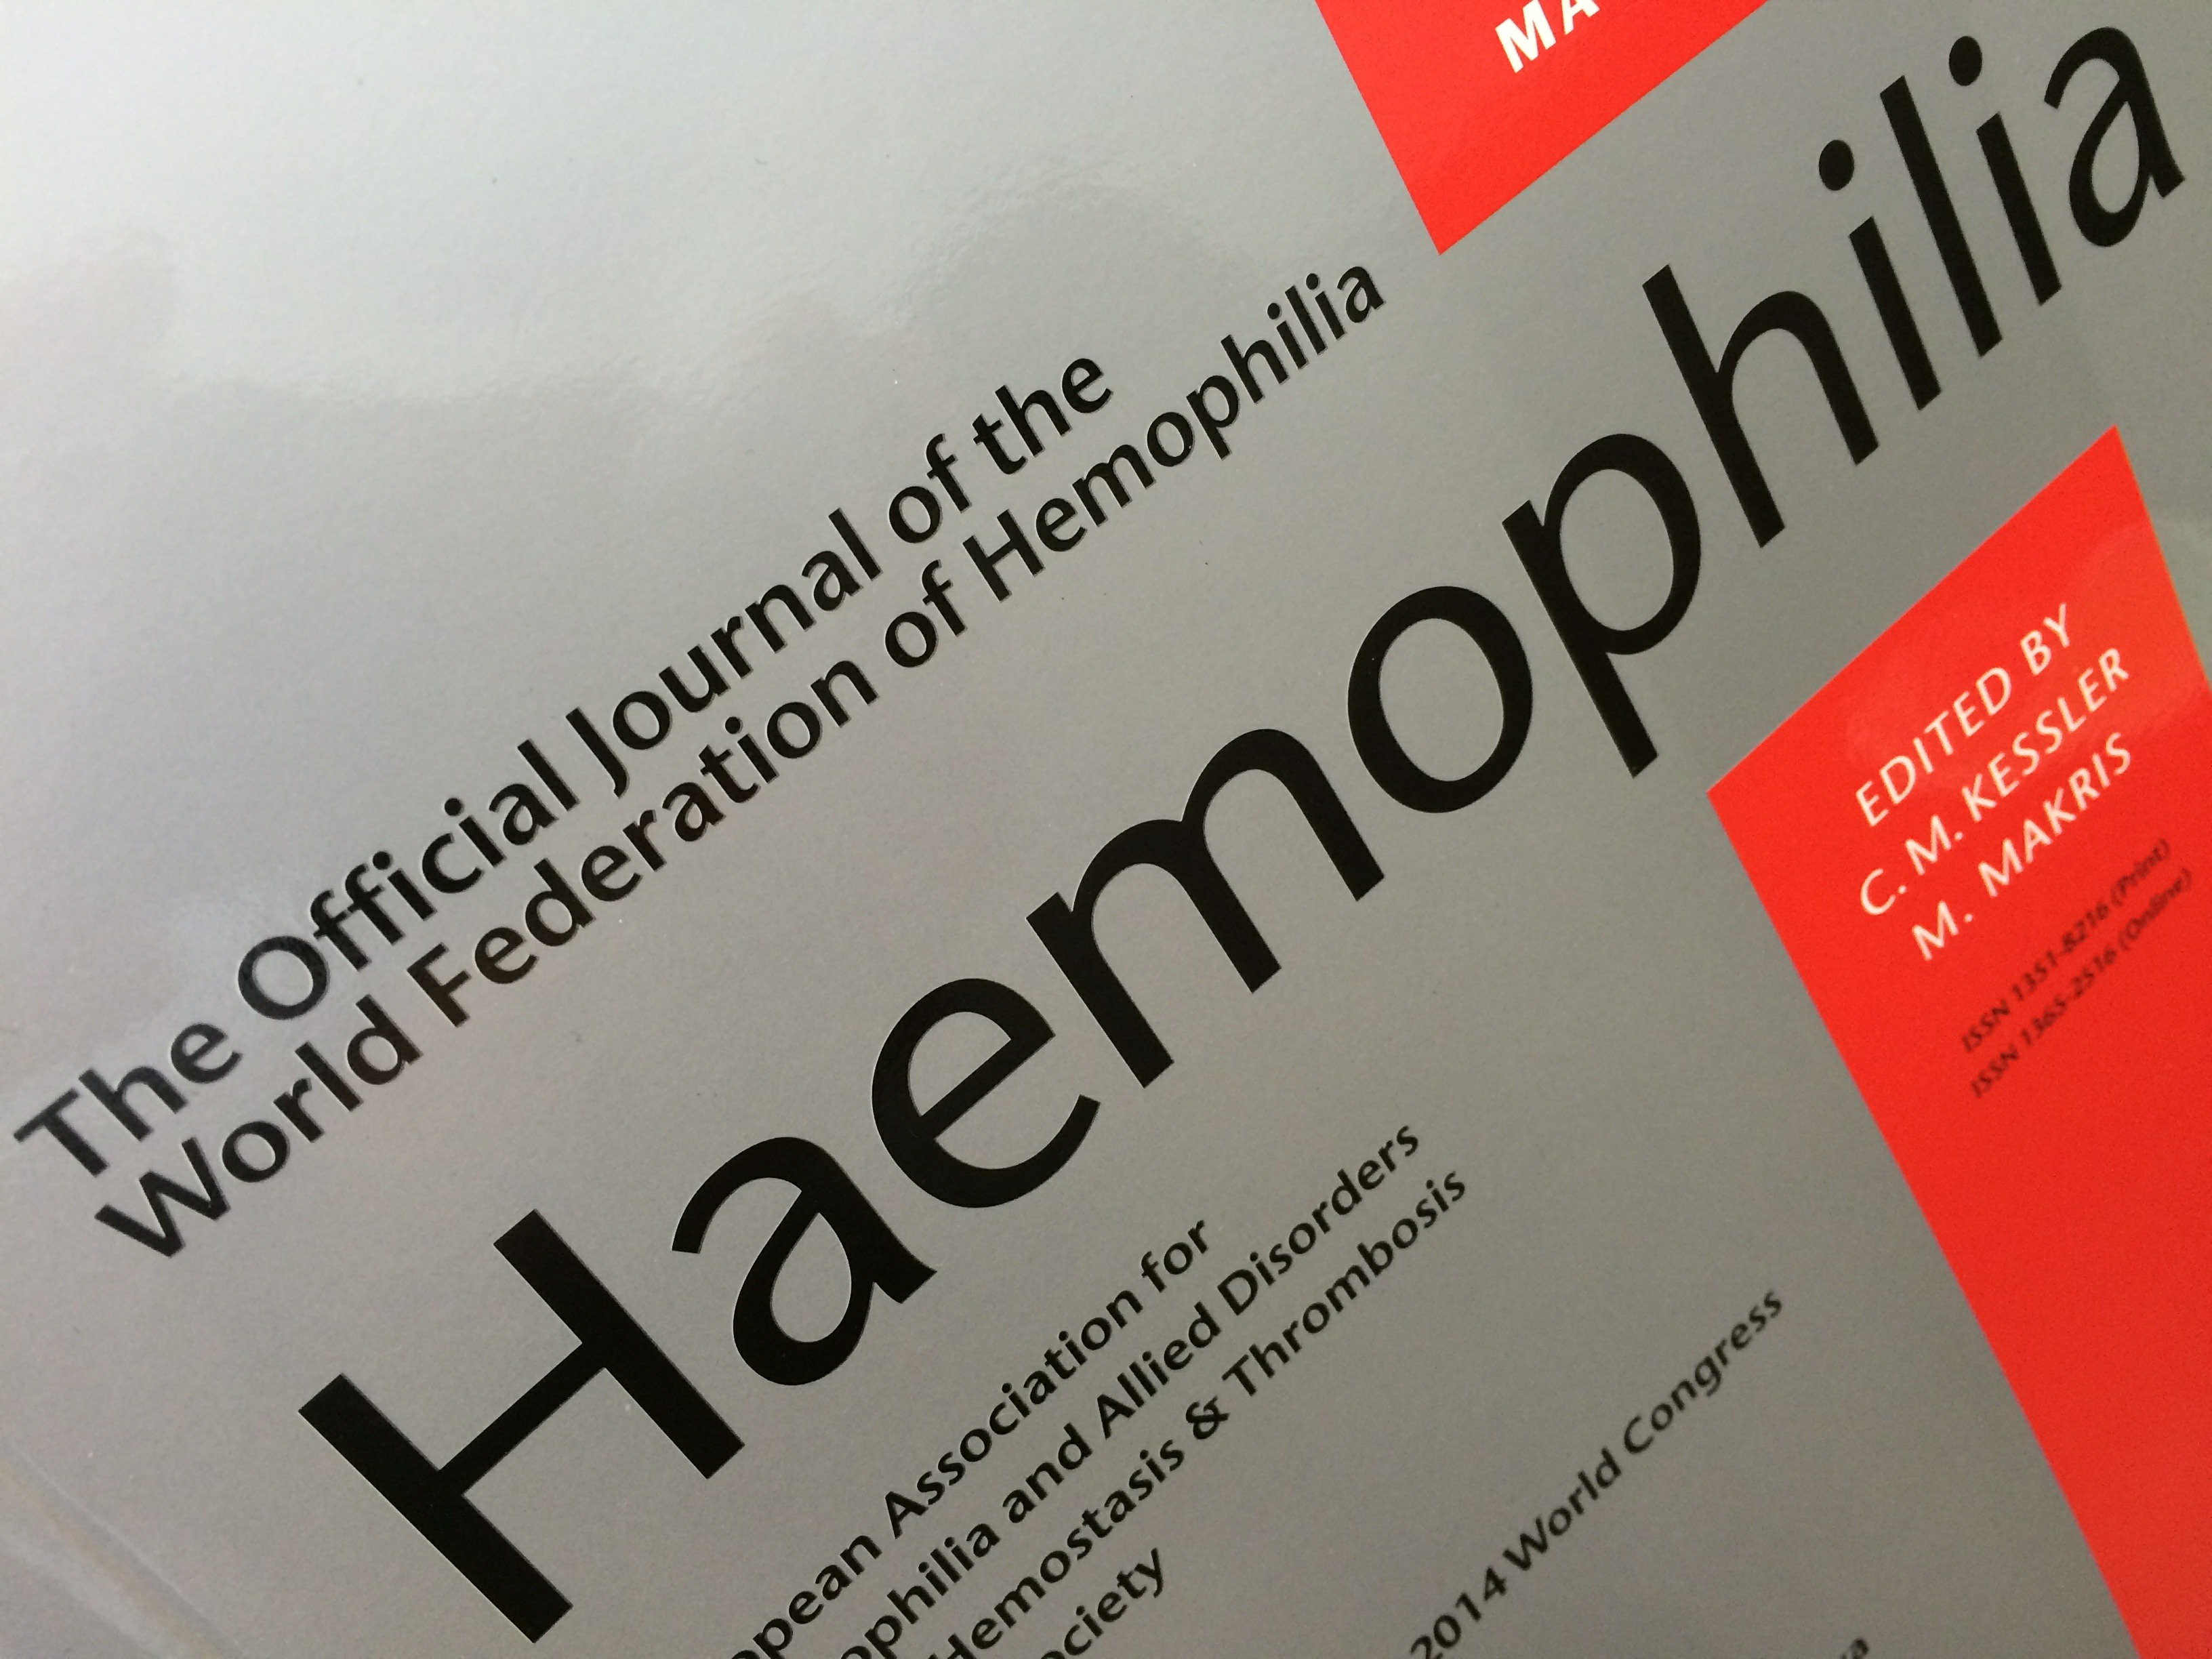 Dr. Roberts has article published in the official journal of the World Federation of Hemophilia!